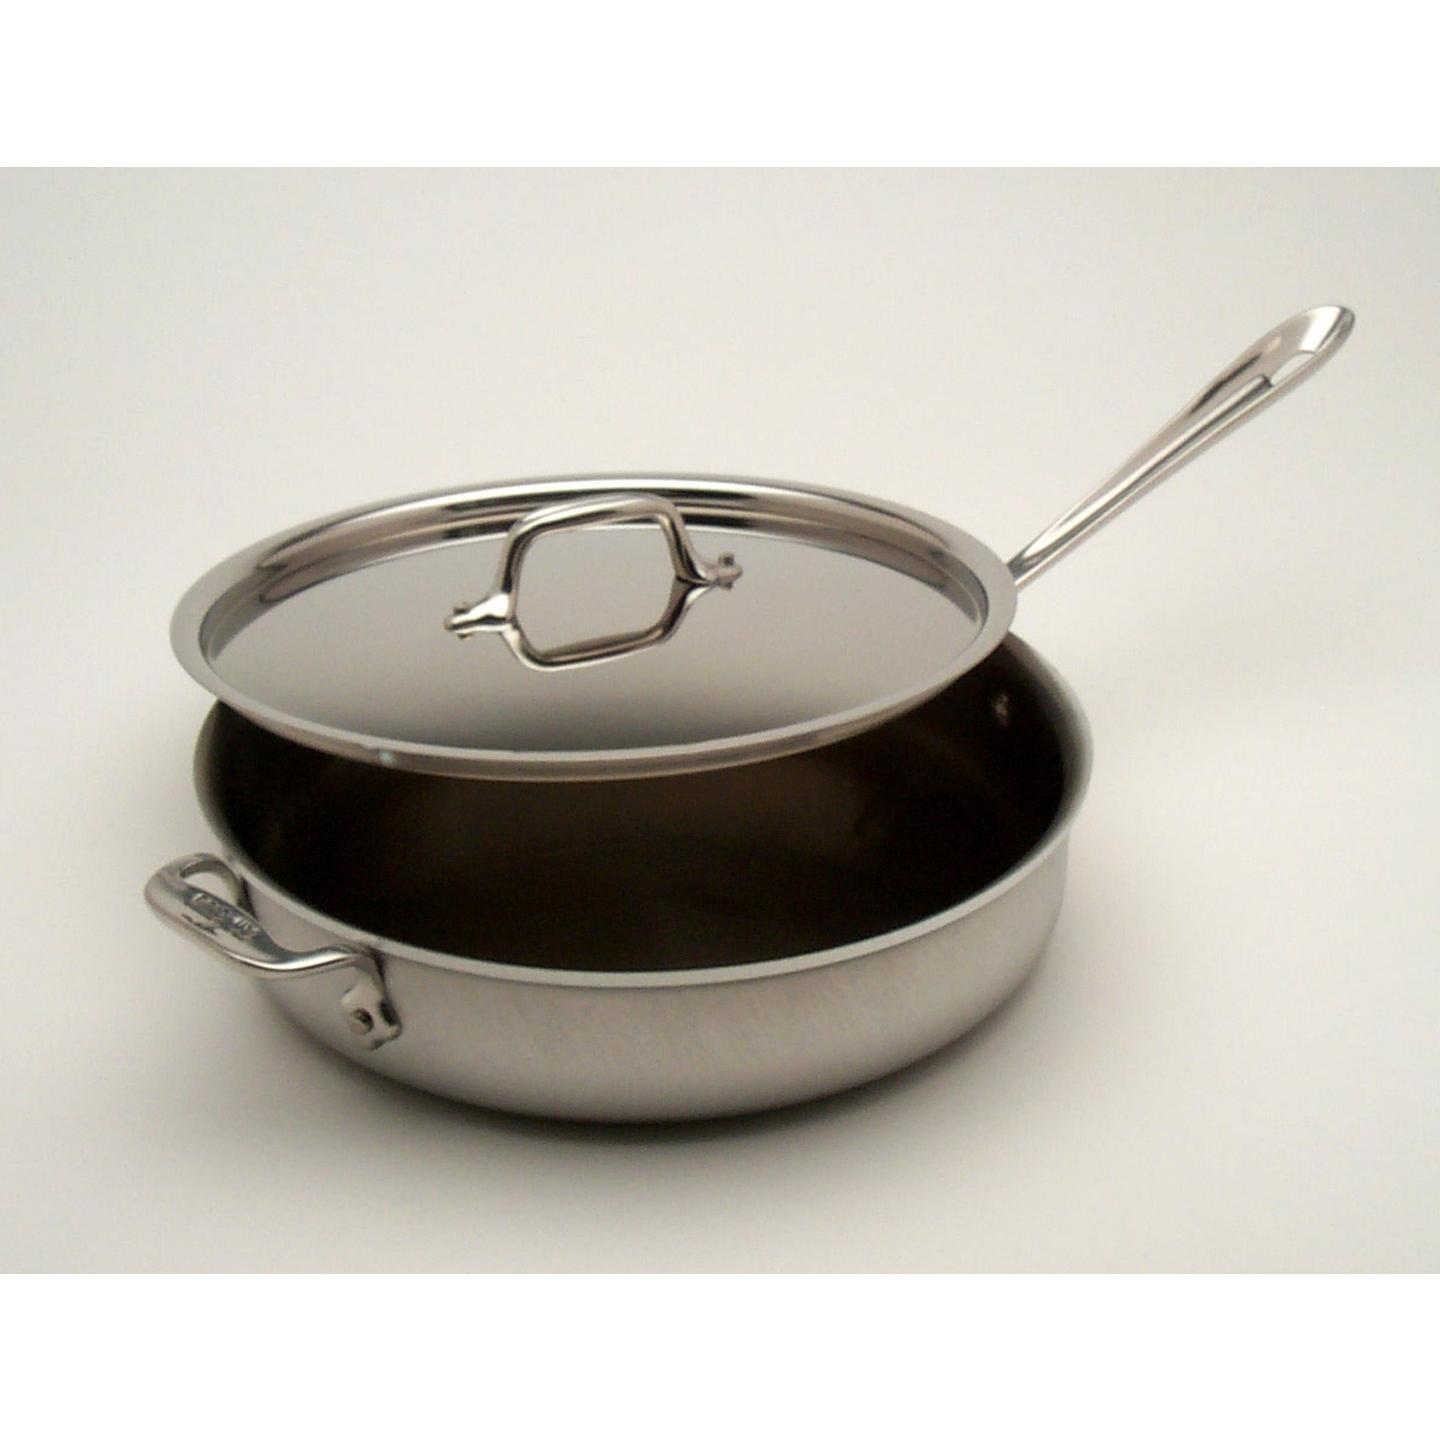 All-Clad MC2 Stainless 3-Quart Saute Pan With Lid